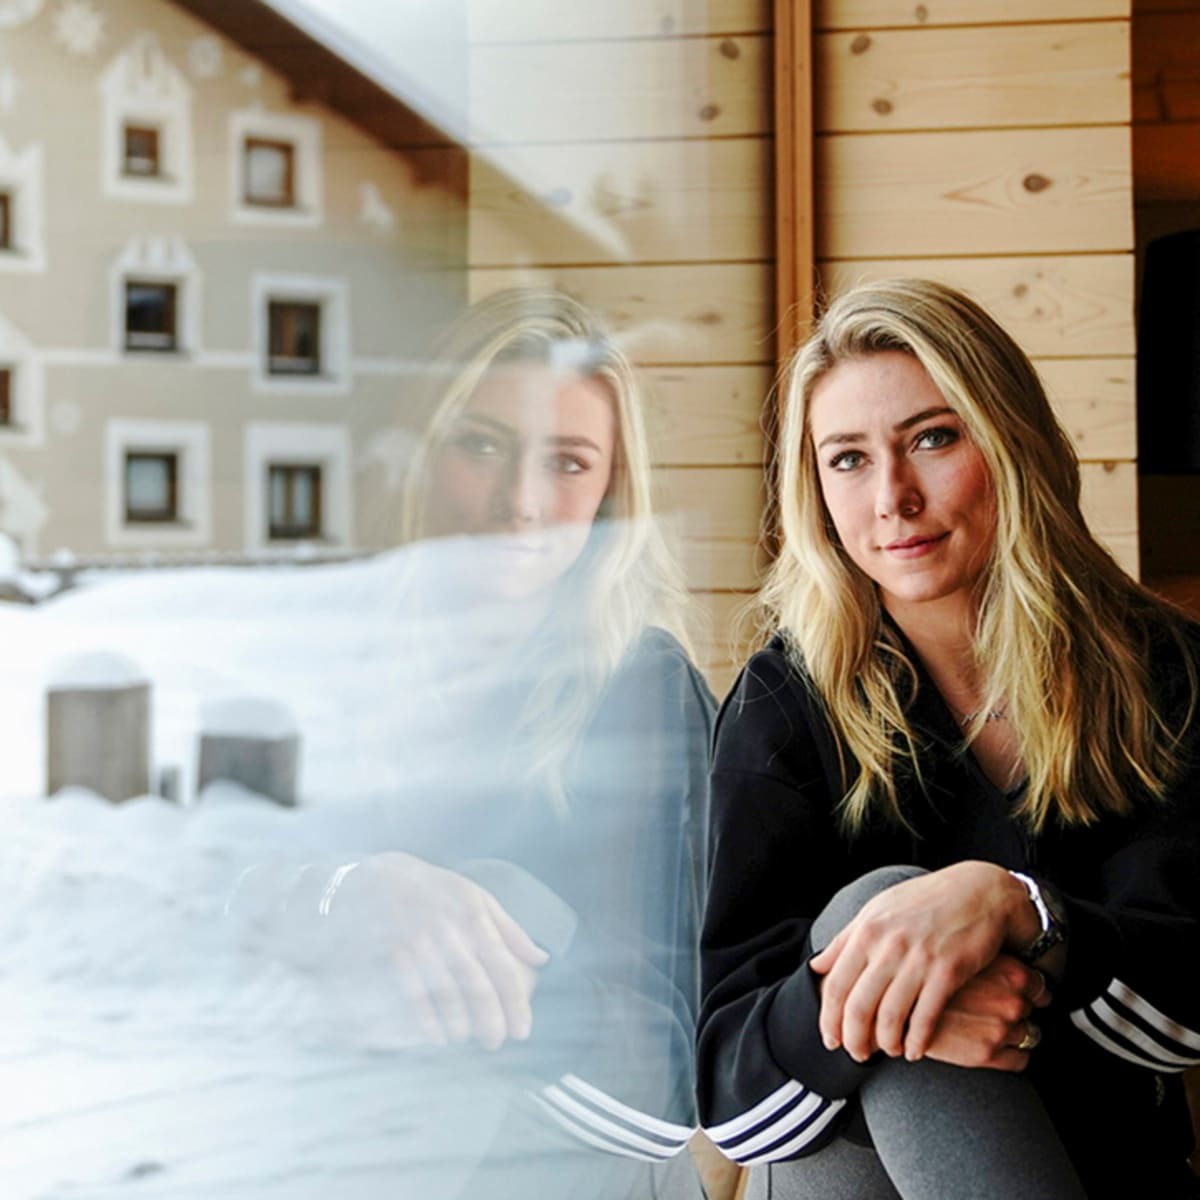 Mikaela Shiffrin Father S Death Impact On Career Return To Alpine Skiing Sports Illustrated